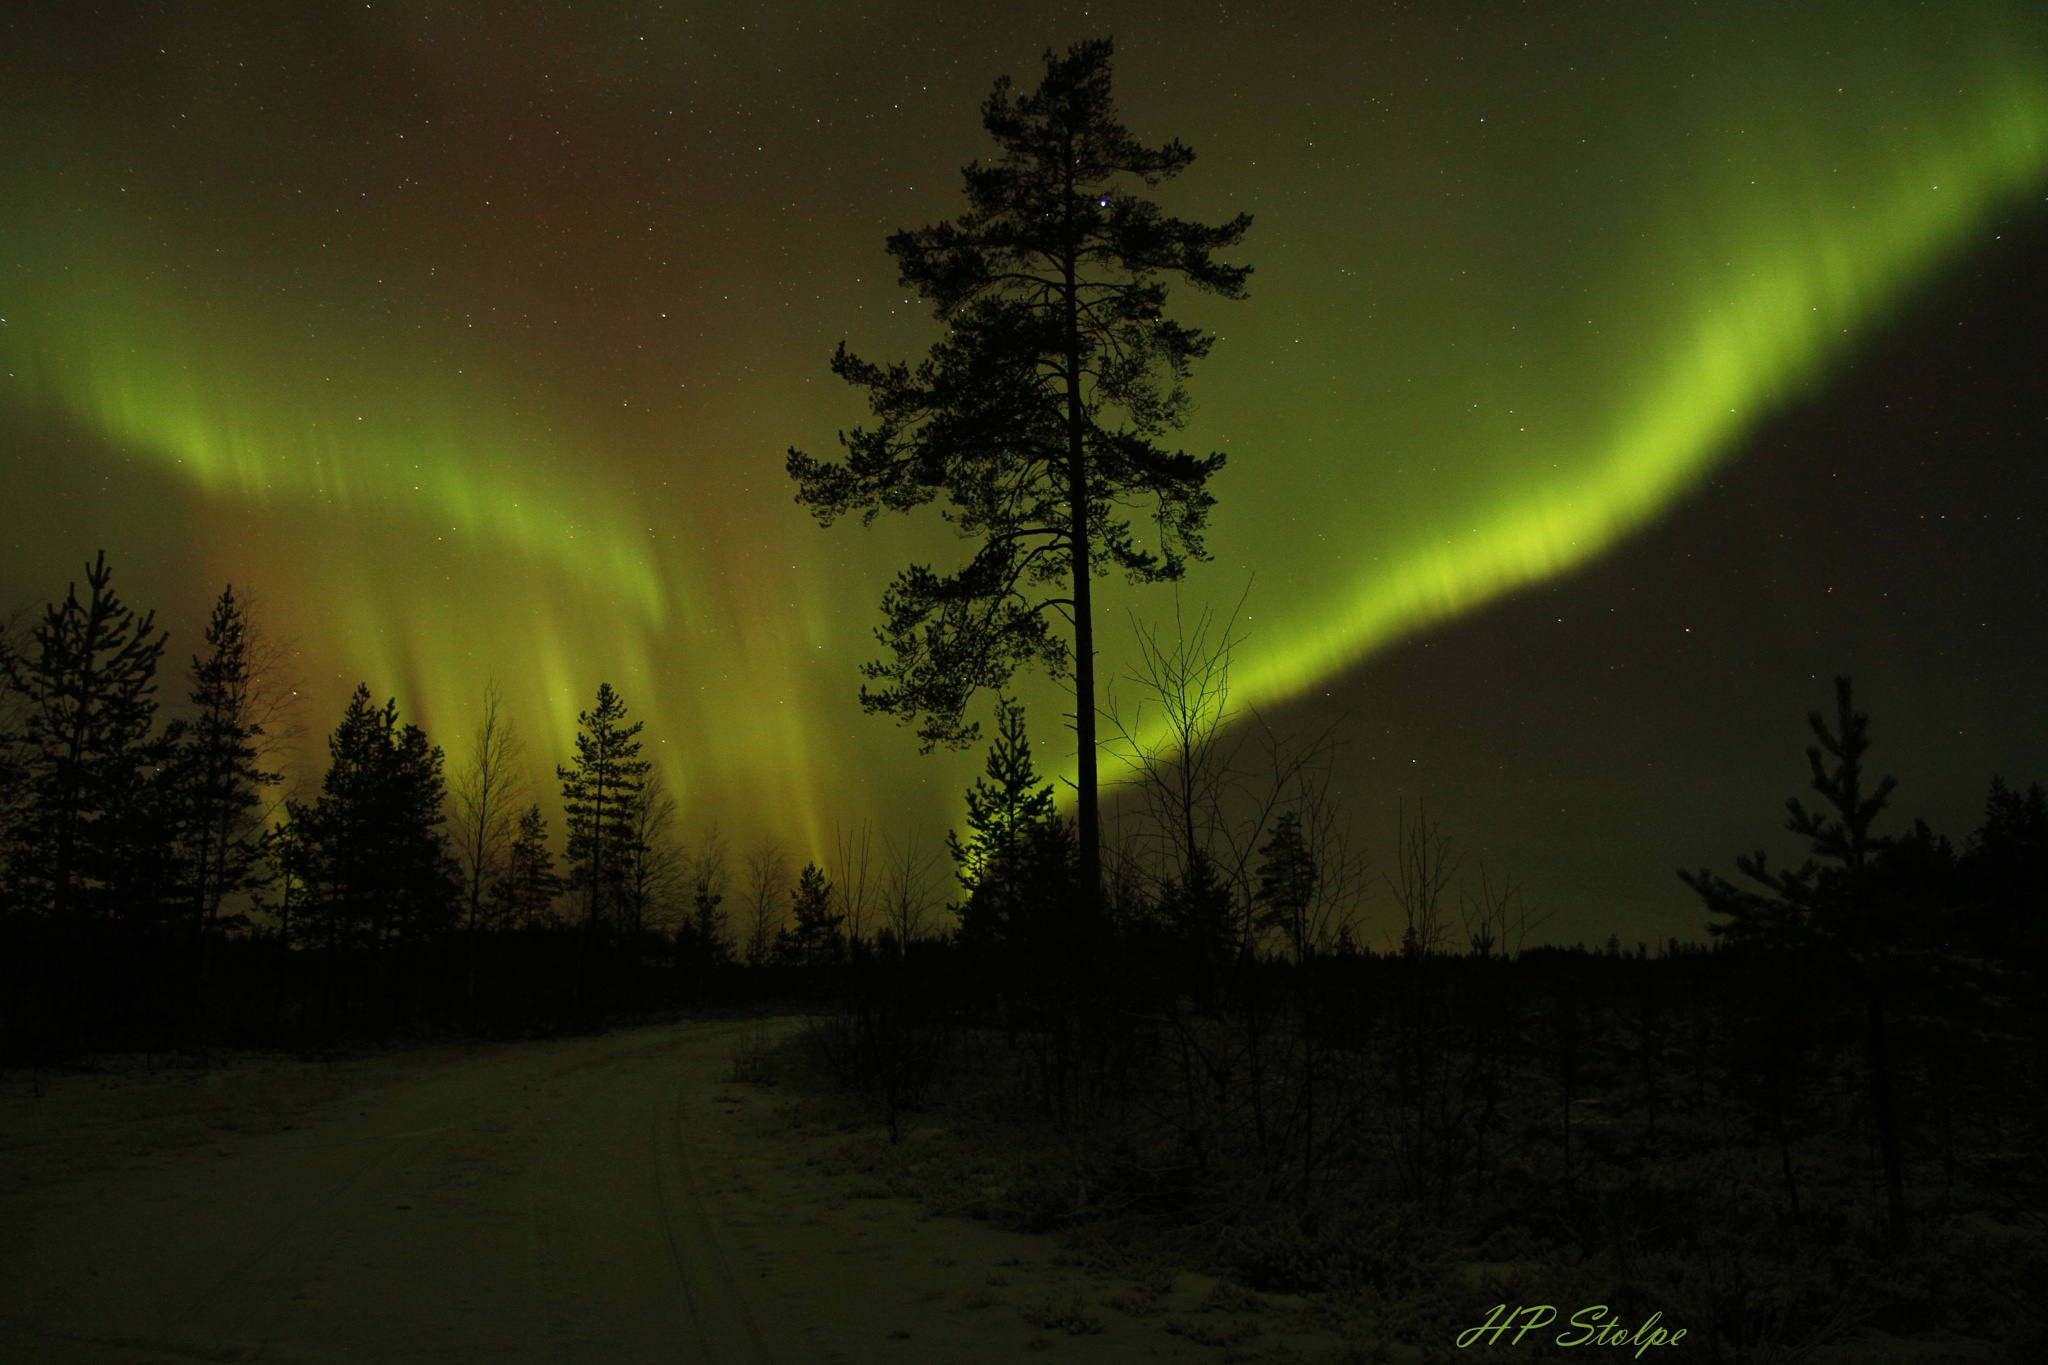 Northern light by HansPeter Stolpe